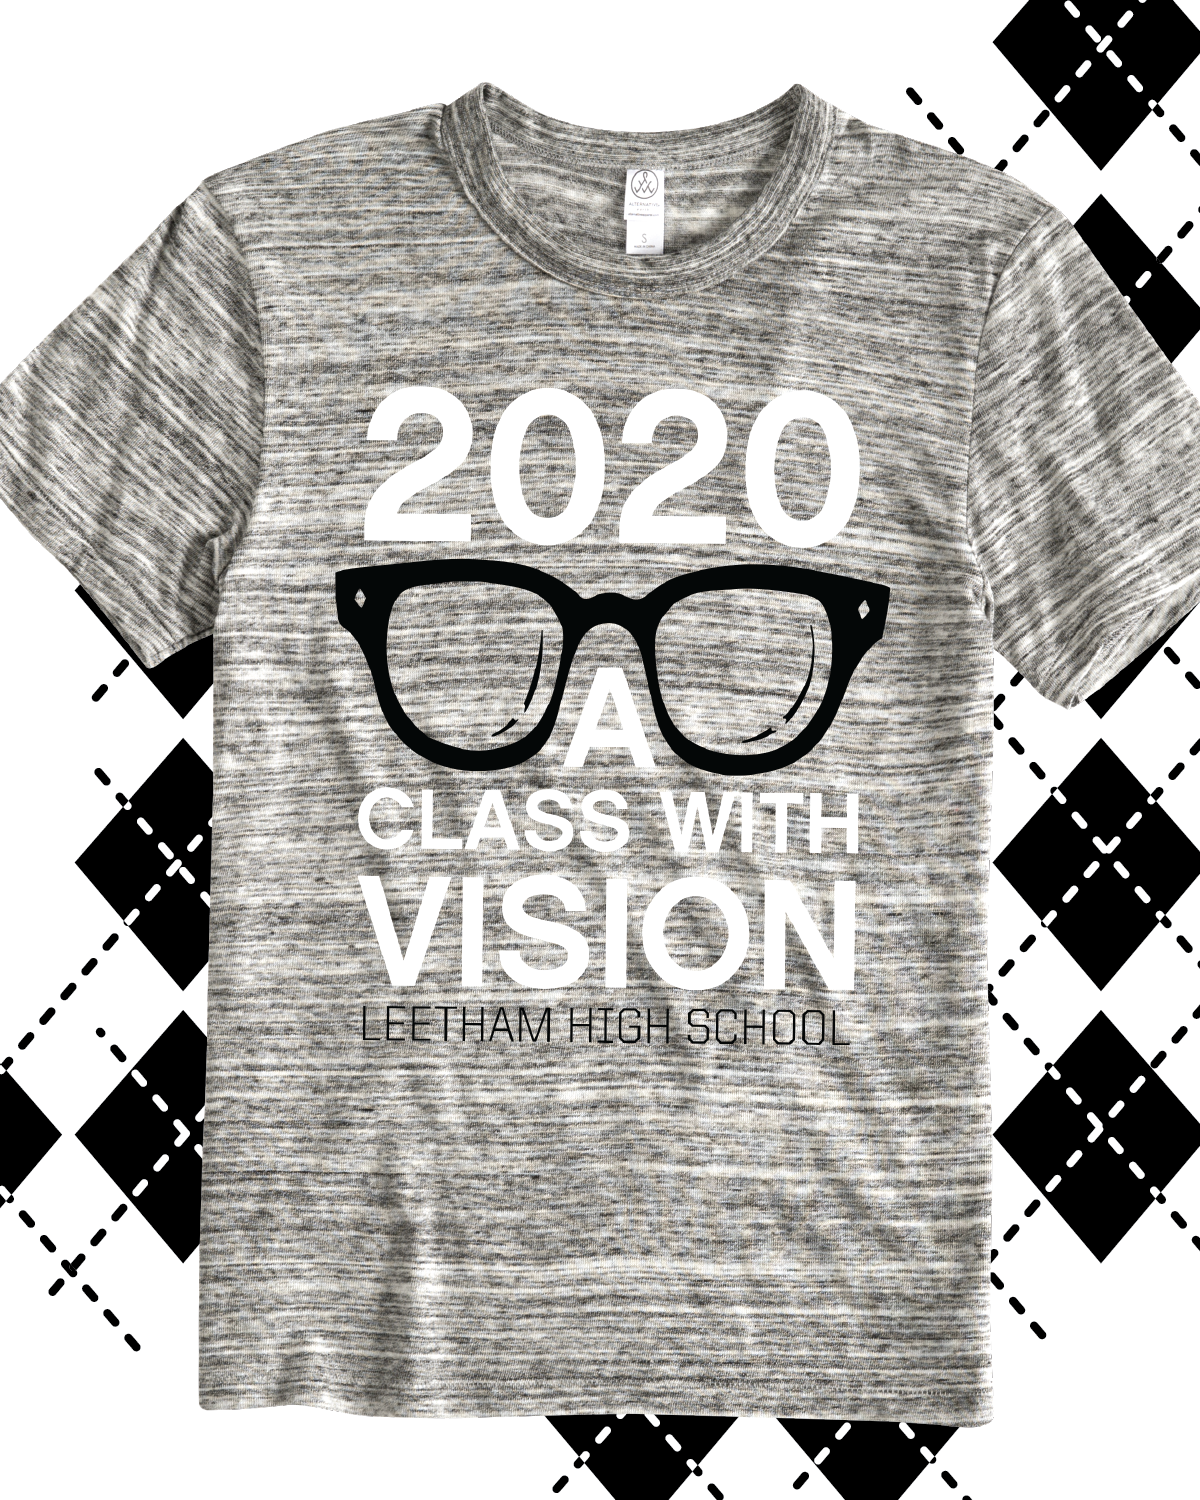 944c4d2dfd 2020 A Class with Vision class of 2020 t-shirt - design idea for custom  shirt - melange, heathered, class shirt, class pride, school pride, school  spirit, ...